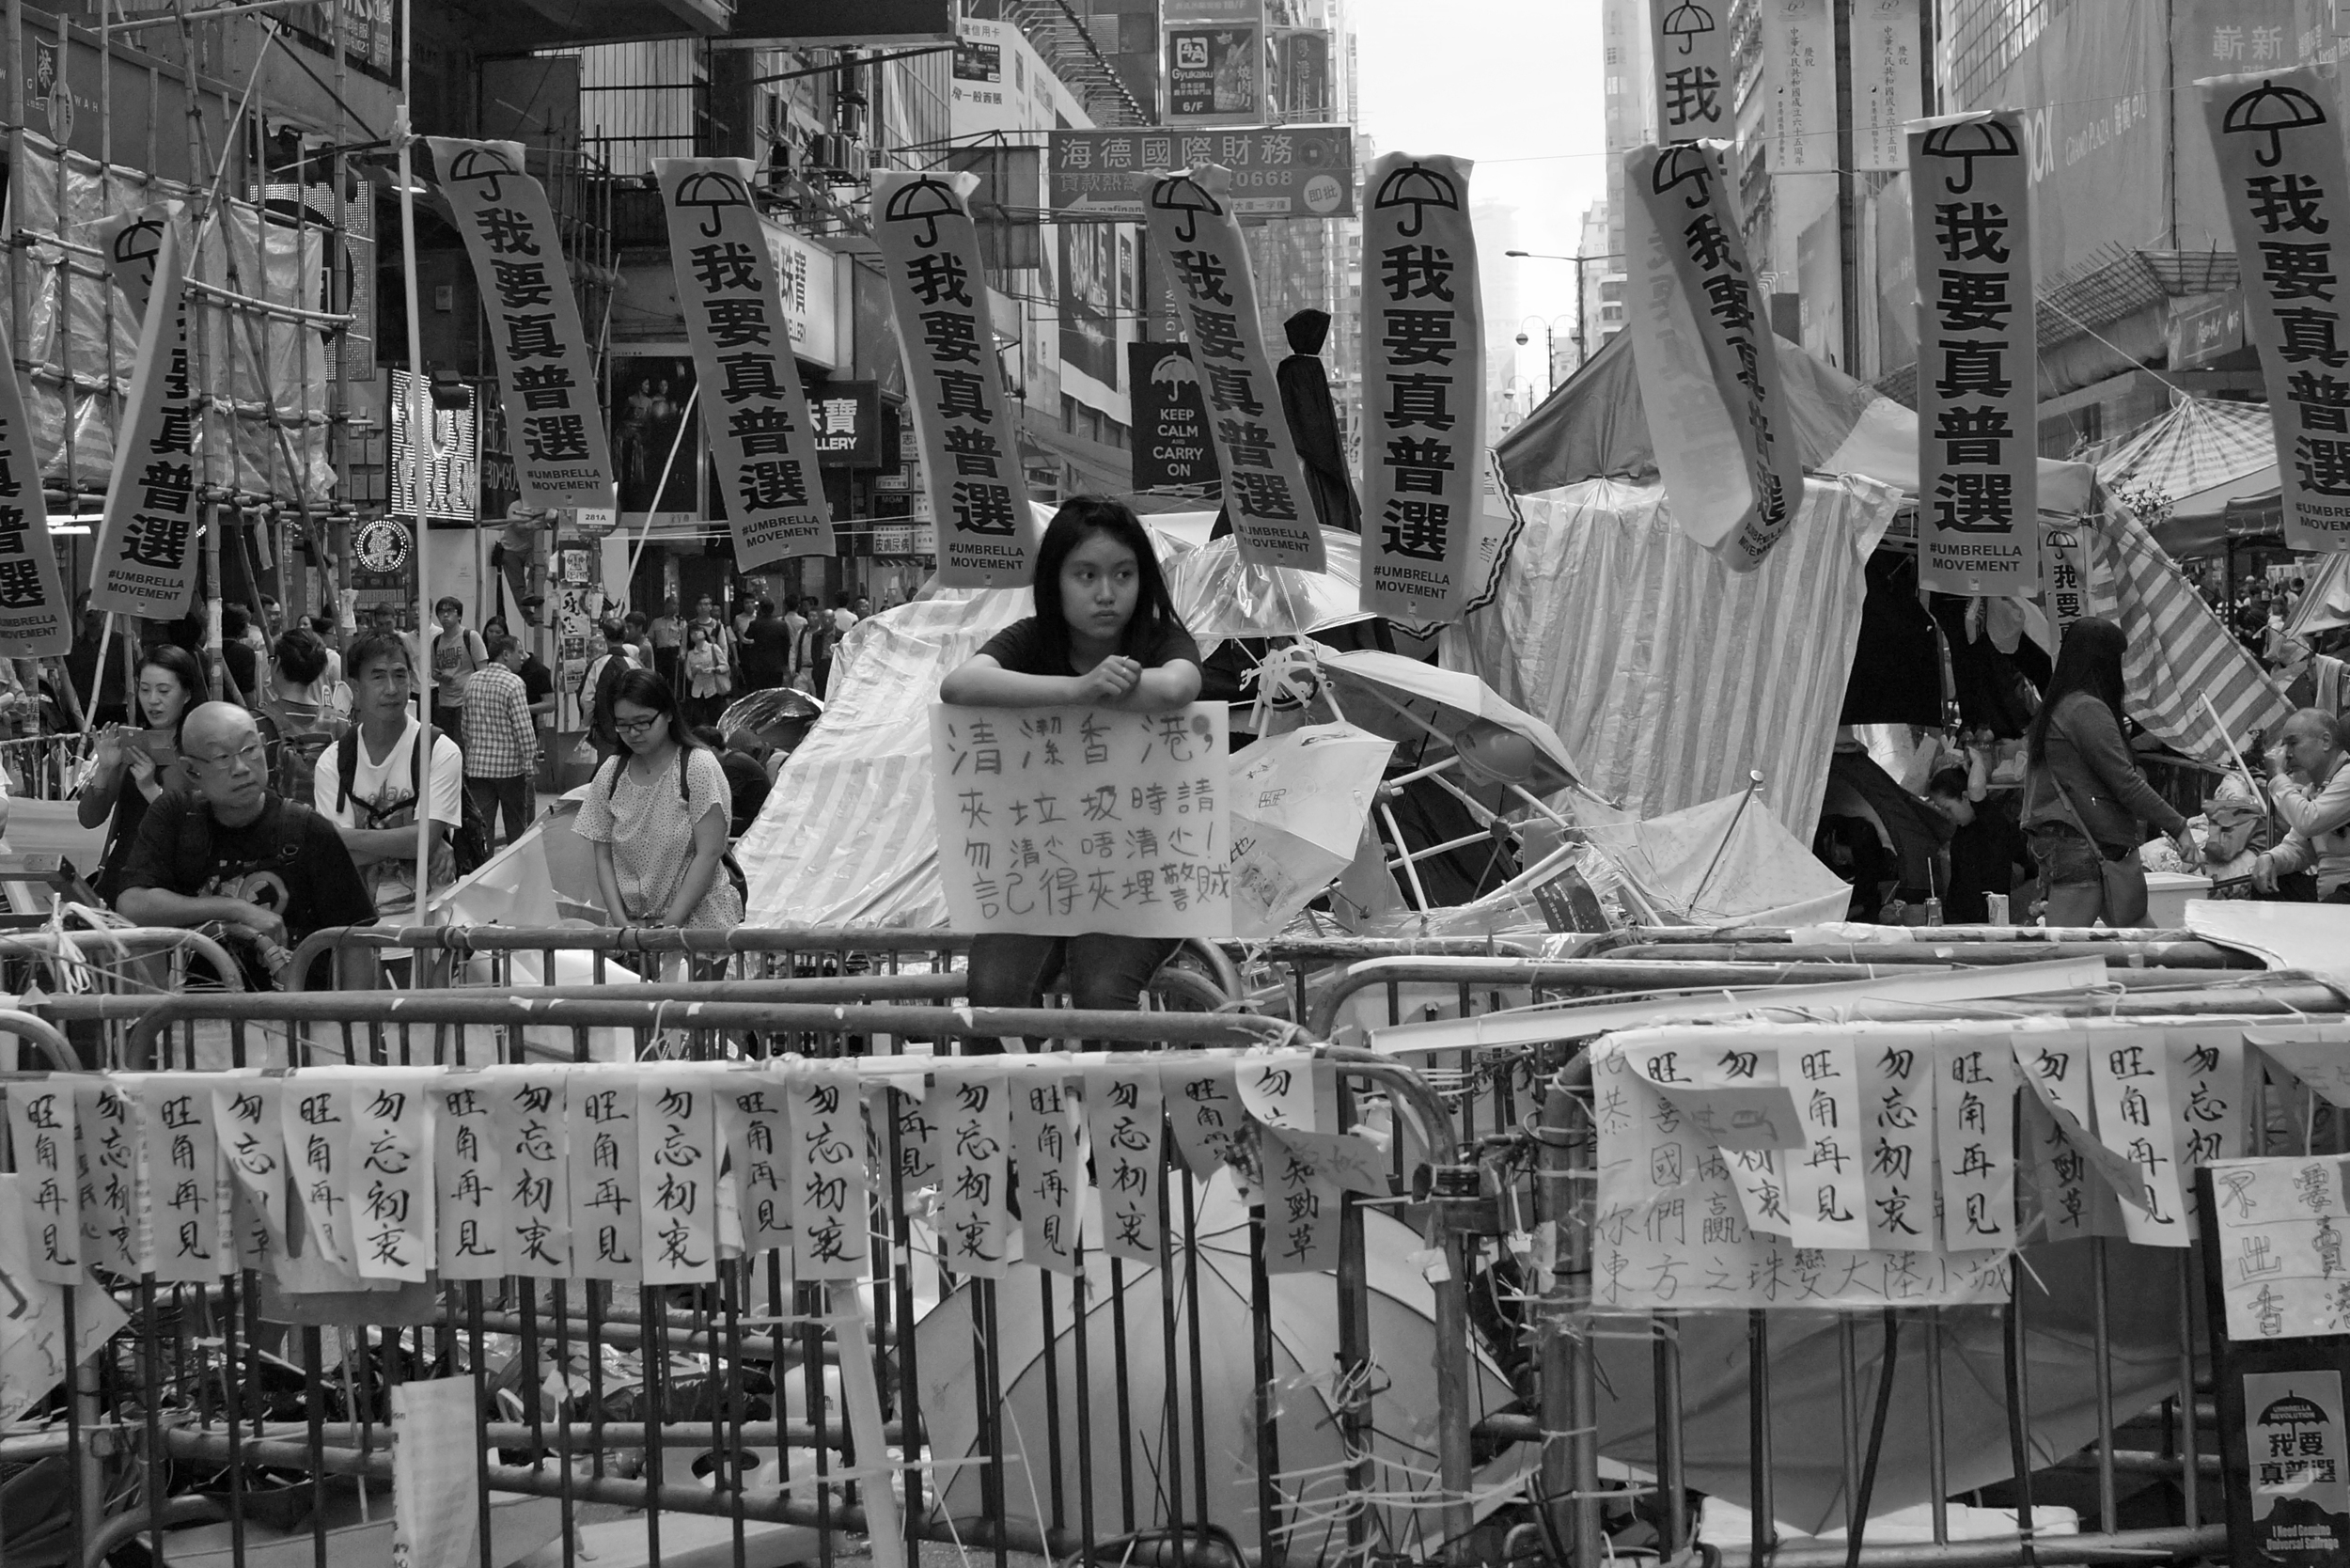 The young lady belongs in a library - image taken 25th November as the battle to clear the streets in Mong Kok starts.. the so called peaceful protesters are reacting violently (as they have done since day one) and it is time our Government dealt with this stupid protest decisively.